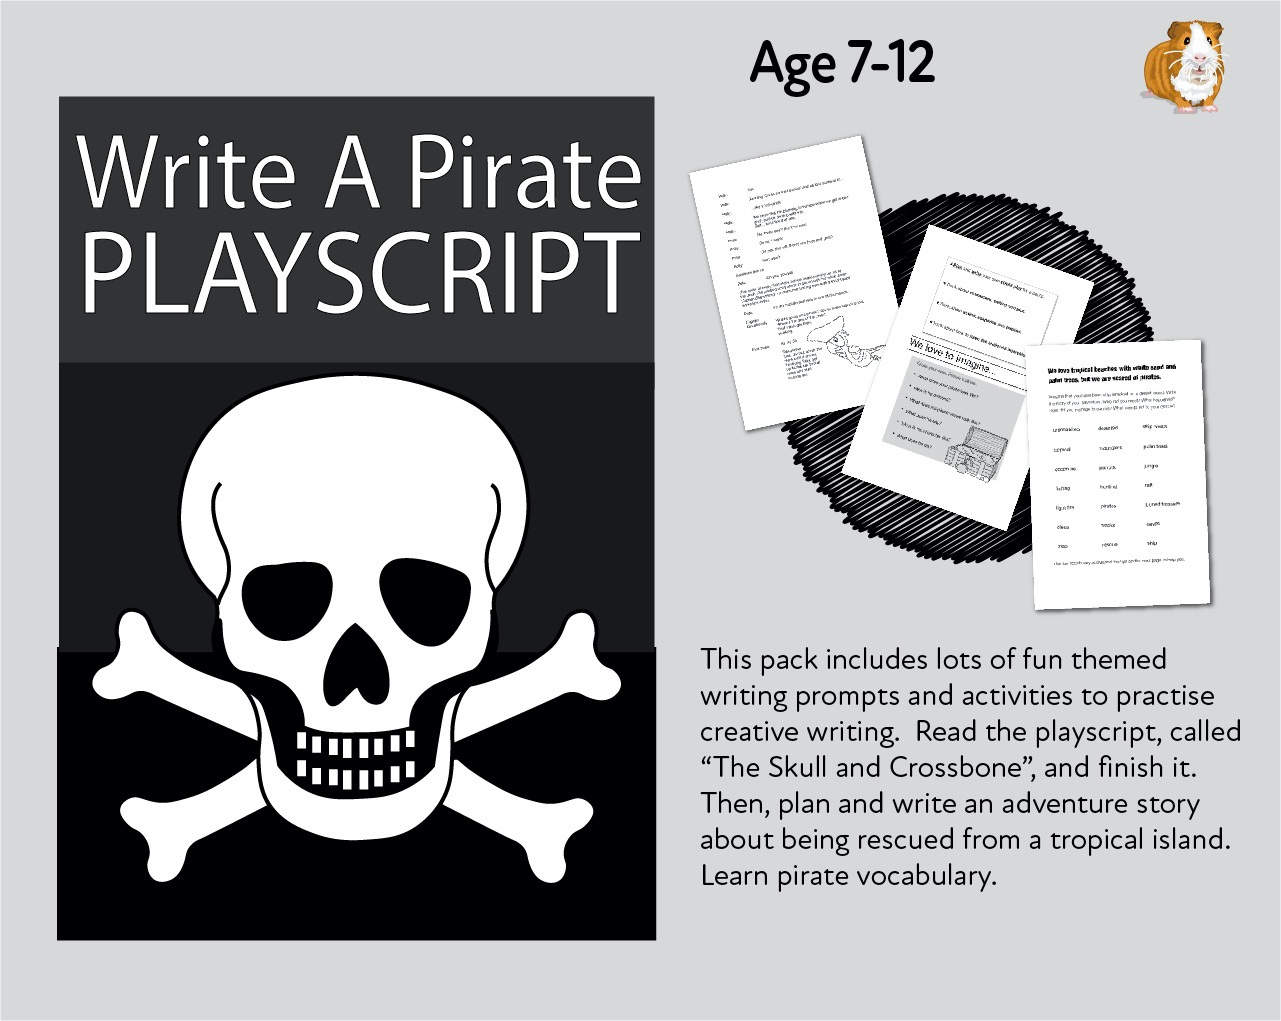 Lots And Lots Of Writing Tasks With A Pirate Theme 'The Skull And Cross Bone' 7-11 years)